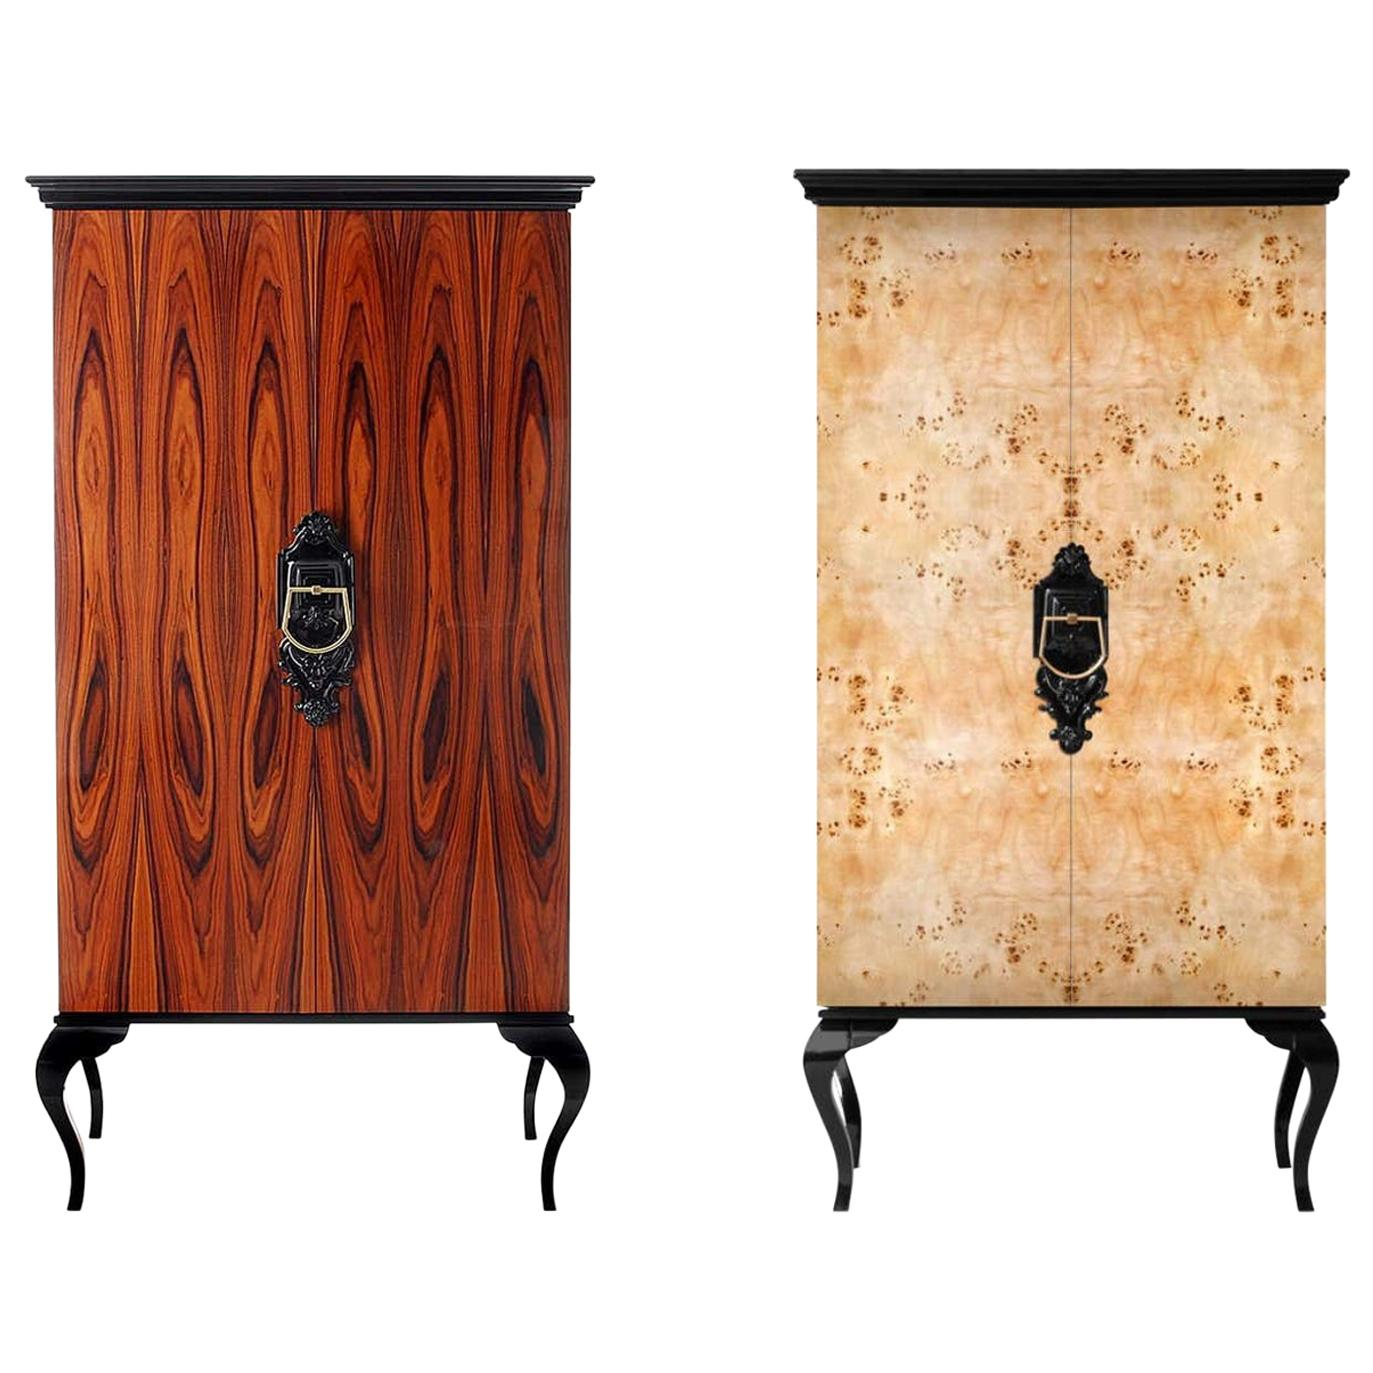 Cabinet Patch in Lacquered Wood